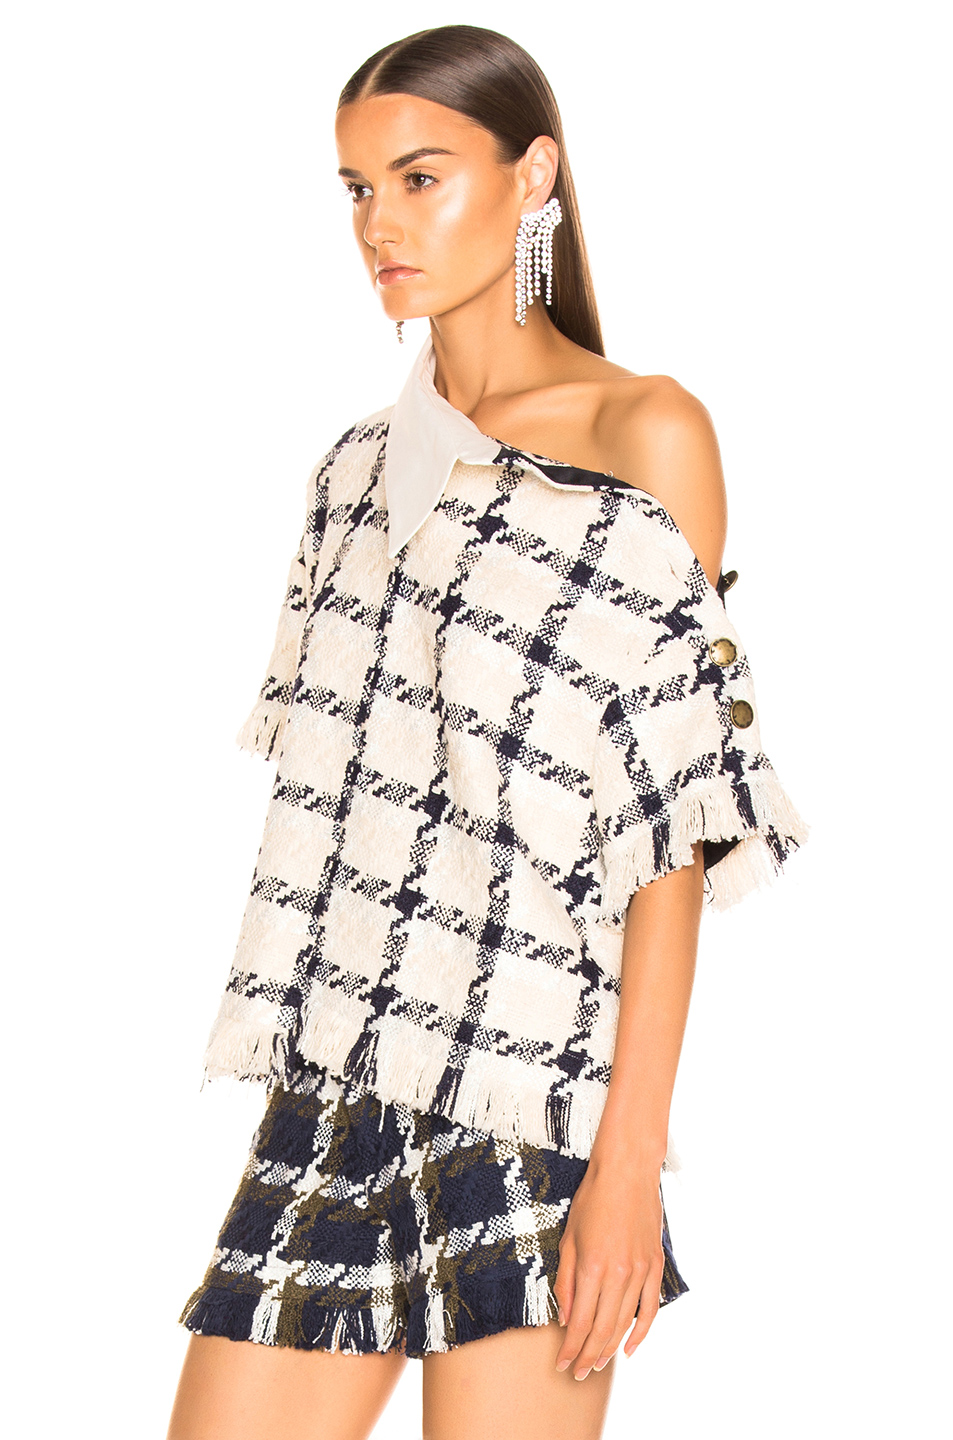 Monse Shifted Tweed Rugby Top